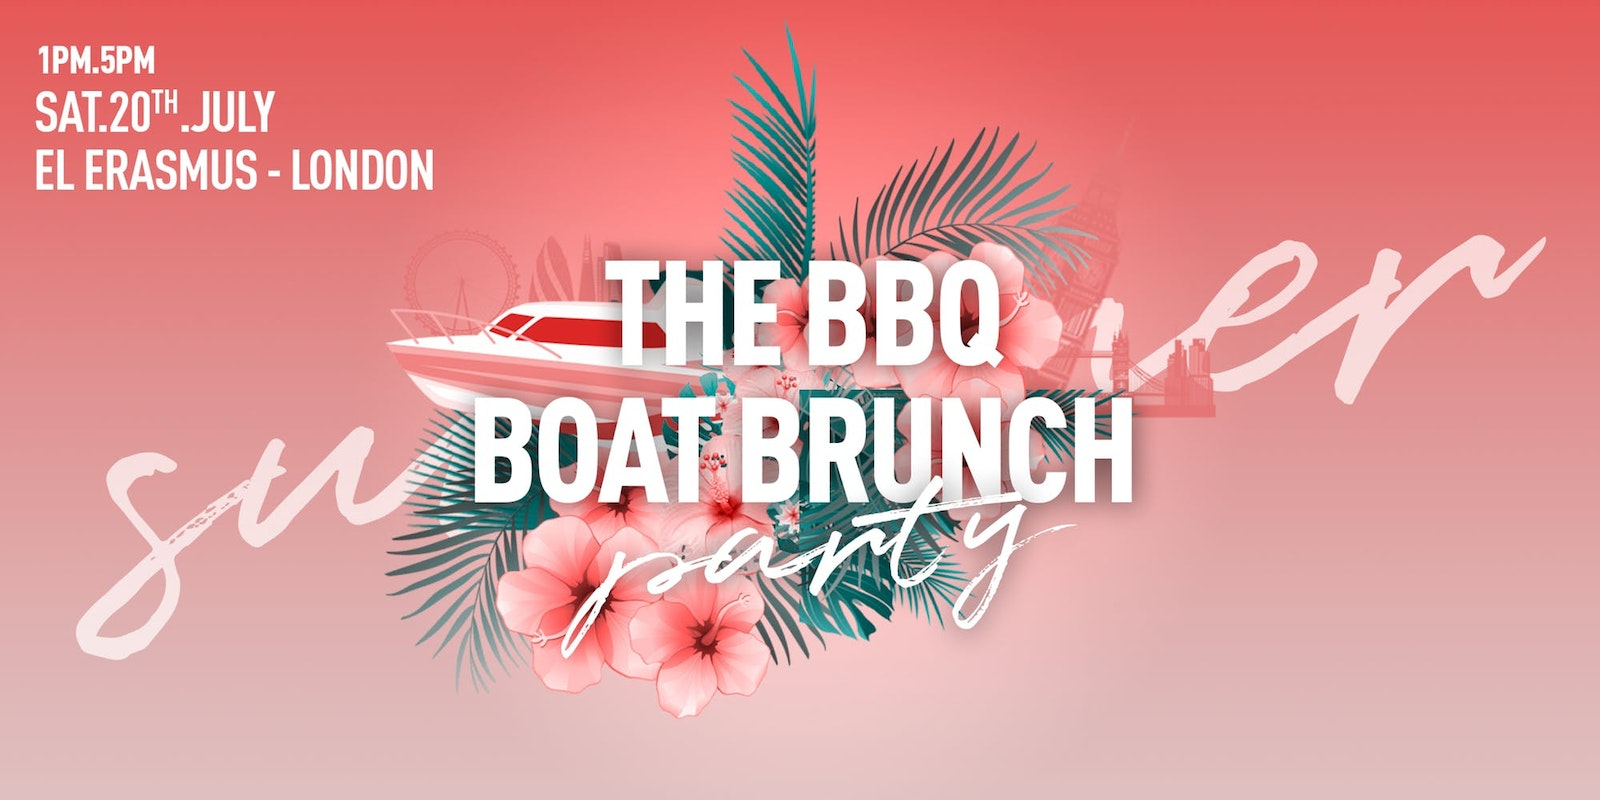 THE BBQ BOAT BRUNCH 2019 – RIVER THAMES, LONDON